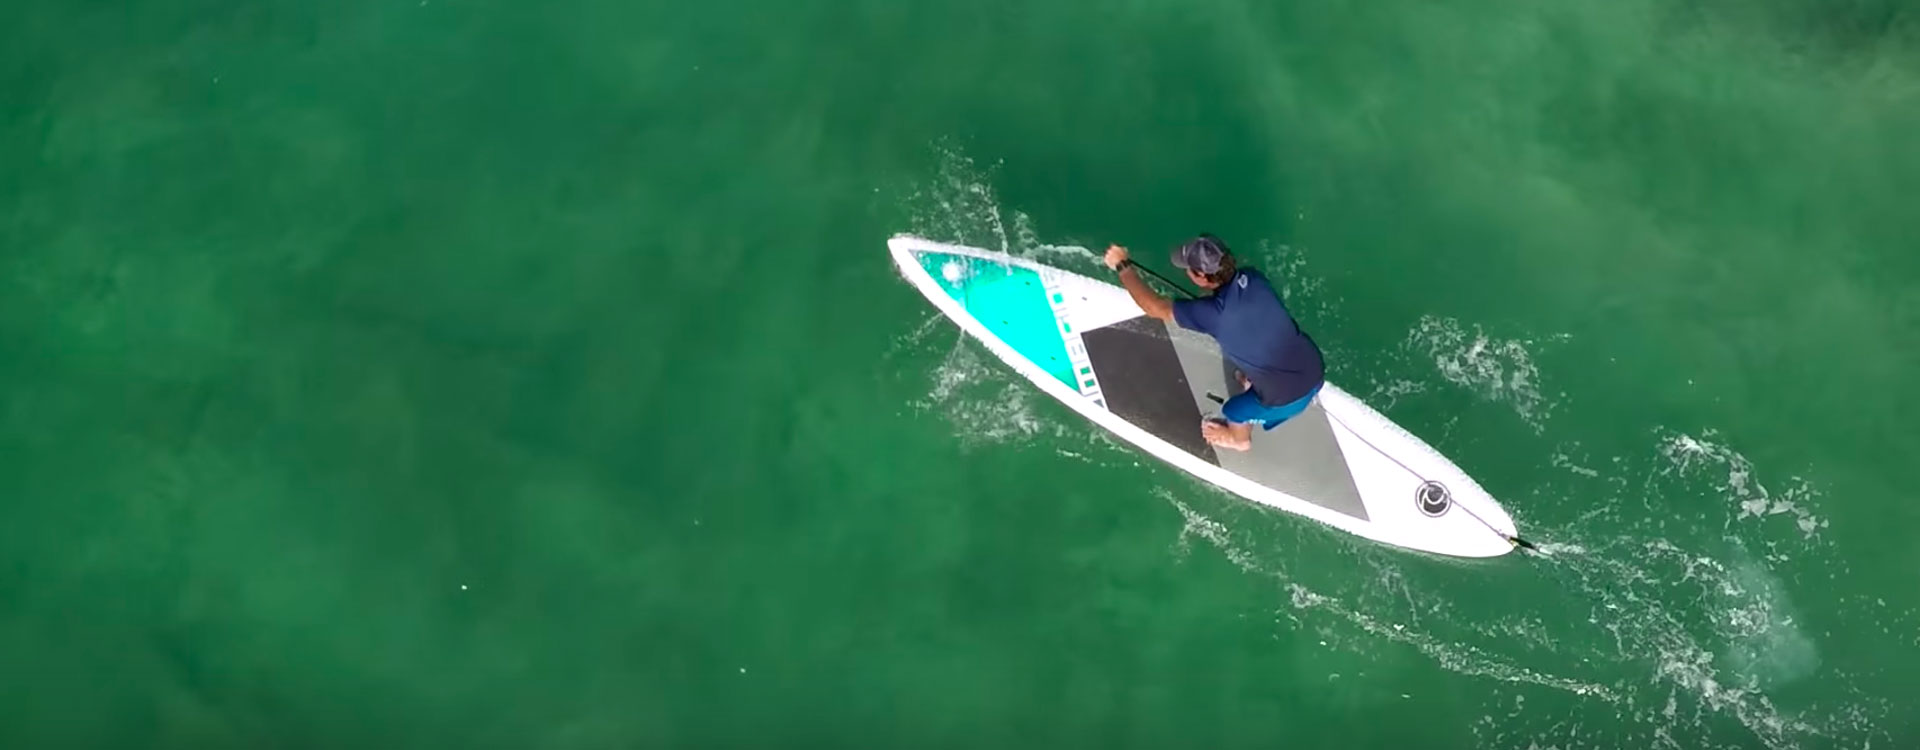 Dave Kalama walks us through the features and design notes of the Crossover XT by Imagine Surf